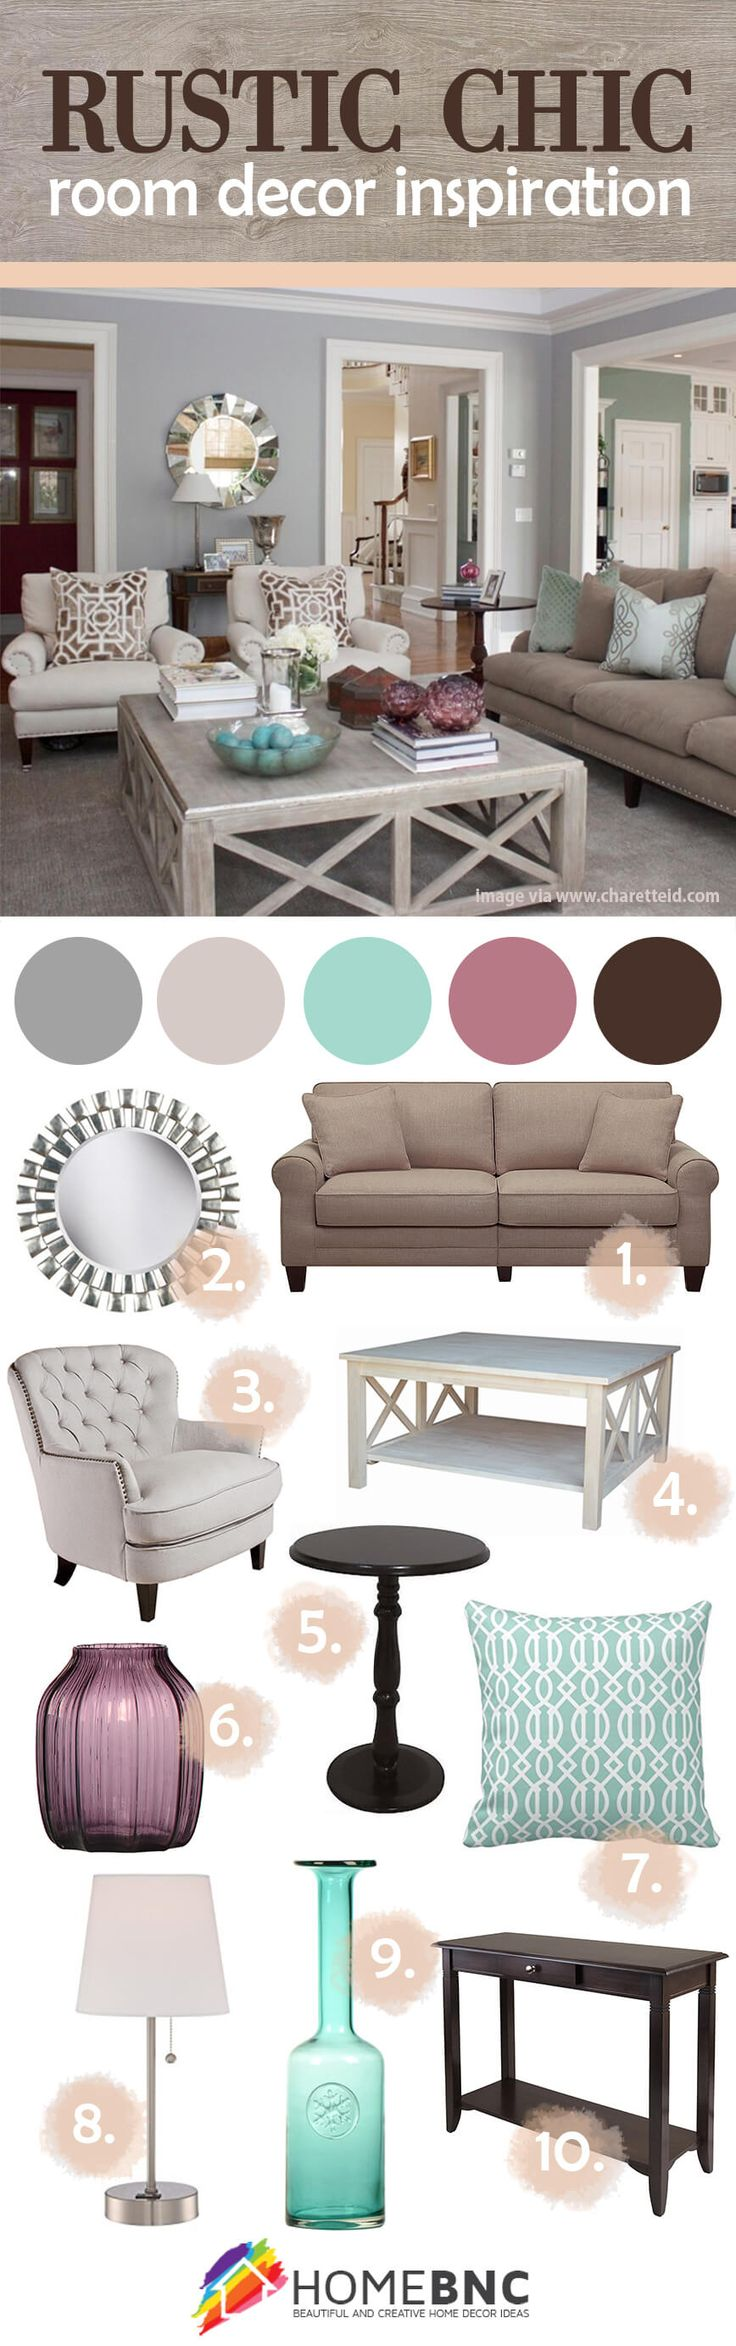 25 best ideas about rustic chic decor on pinterest for Sitting room decorations design